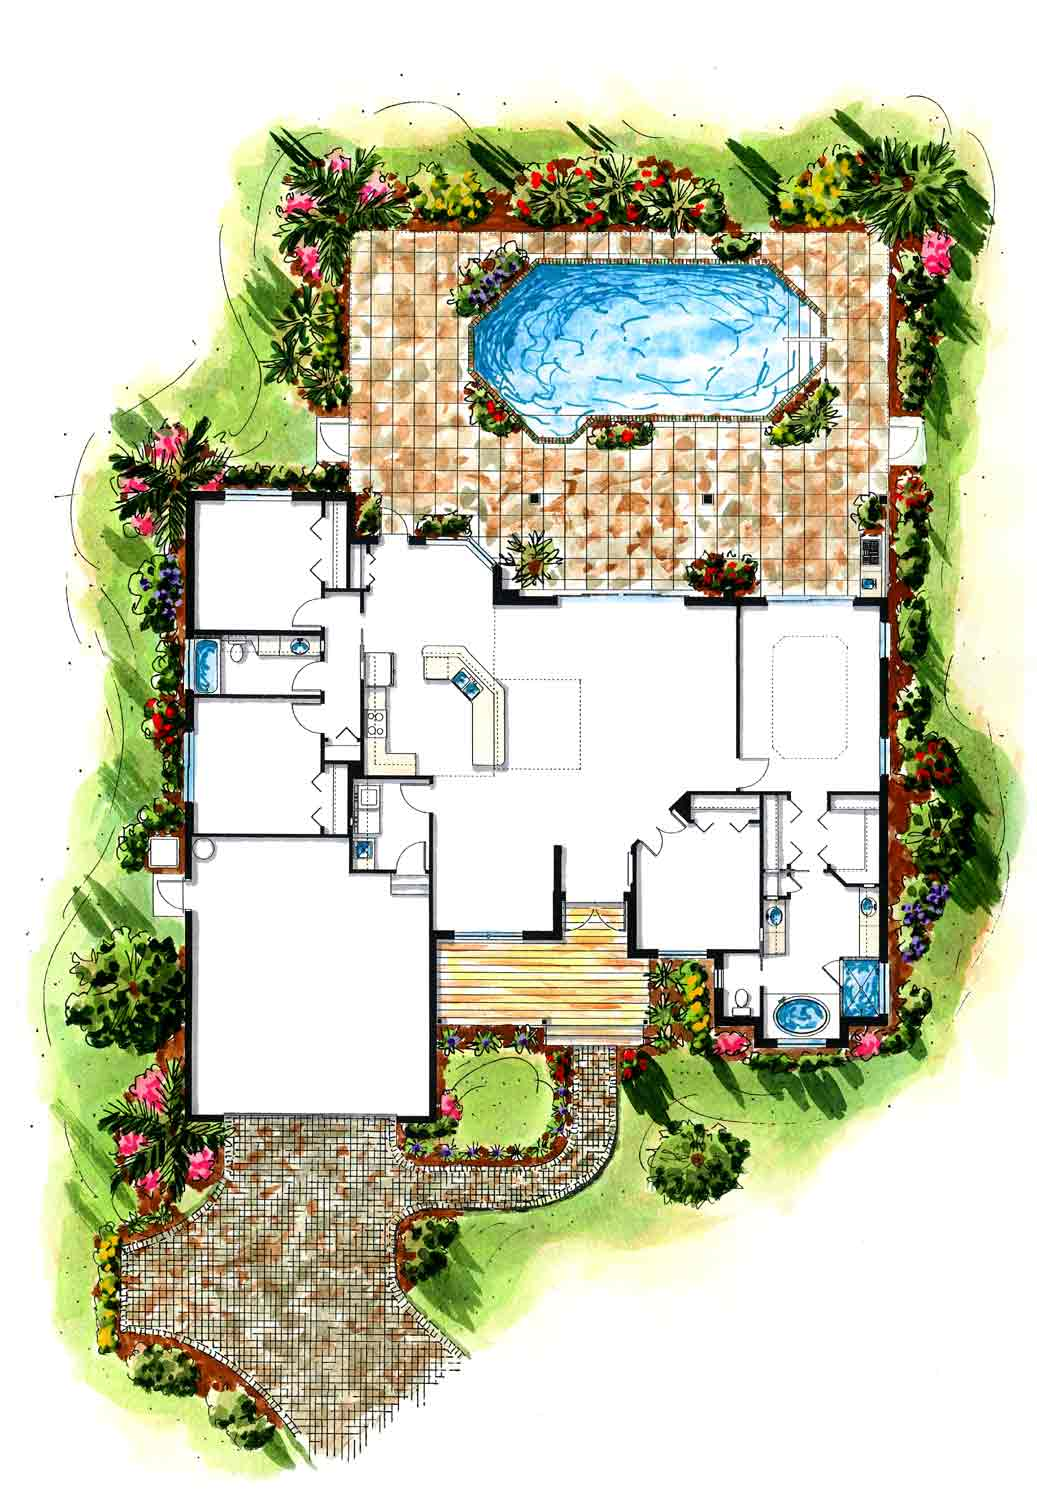 Southwest florida old florida style custom homes for Florida house builders